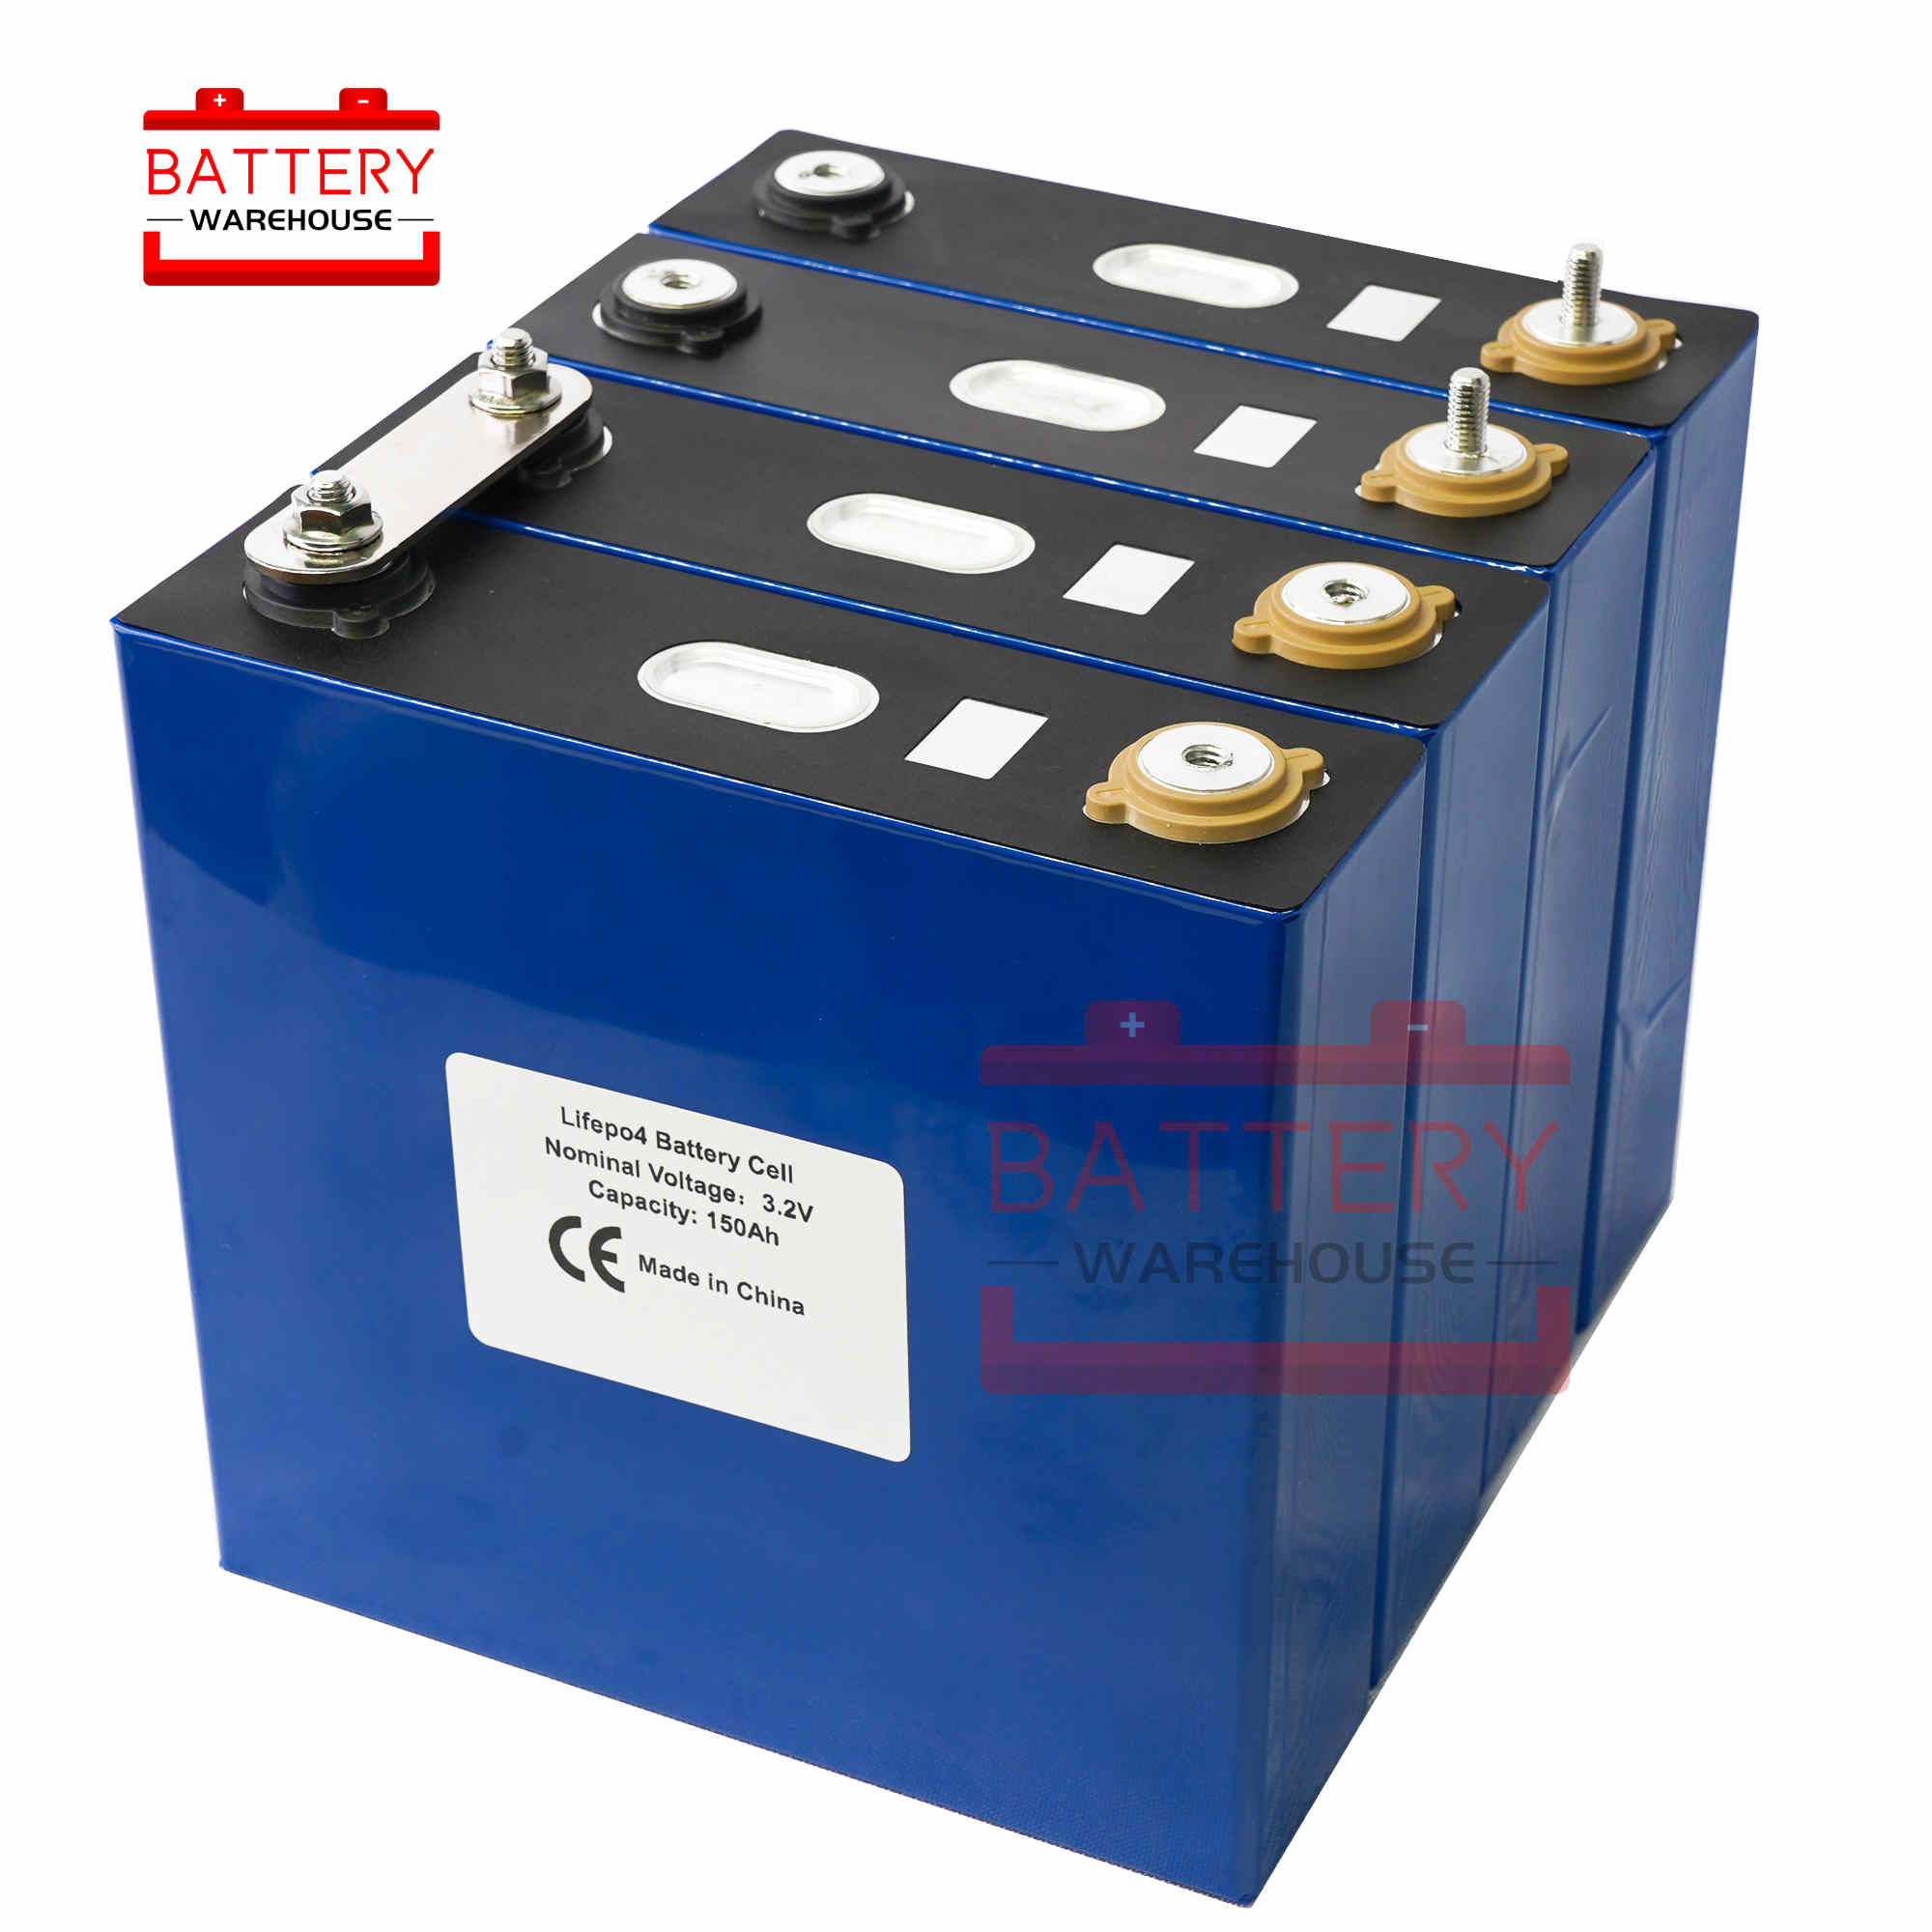 GRADE A new 4Pcs 3.2v 130ah Lifepo4 <font><b>battery</b></font> Lithium iron phosphate cell <font><b>batteries</b></font> <font><b>12v</b></font> 24V130AH not 120AH <font><b>150AH</b></font> for solar RV image